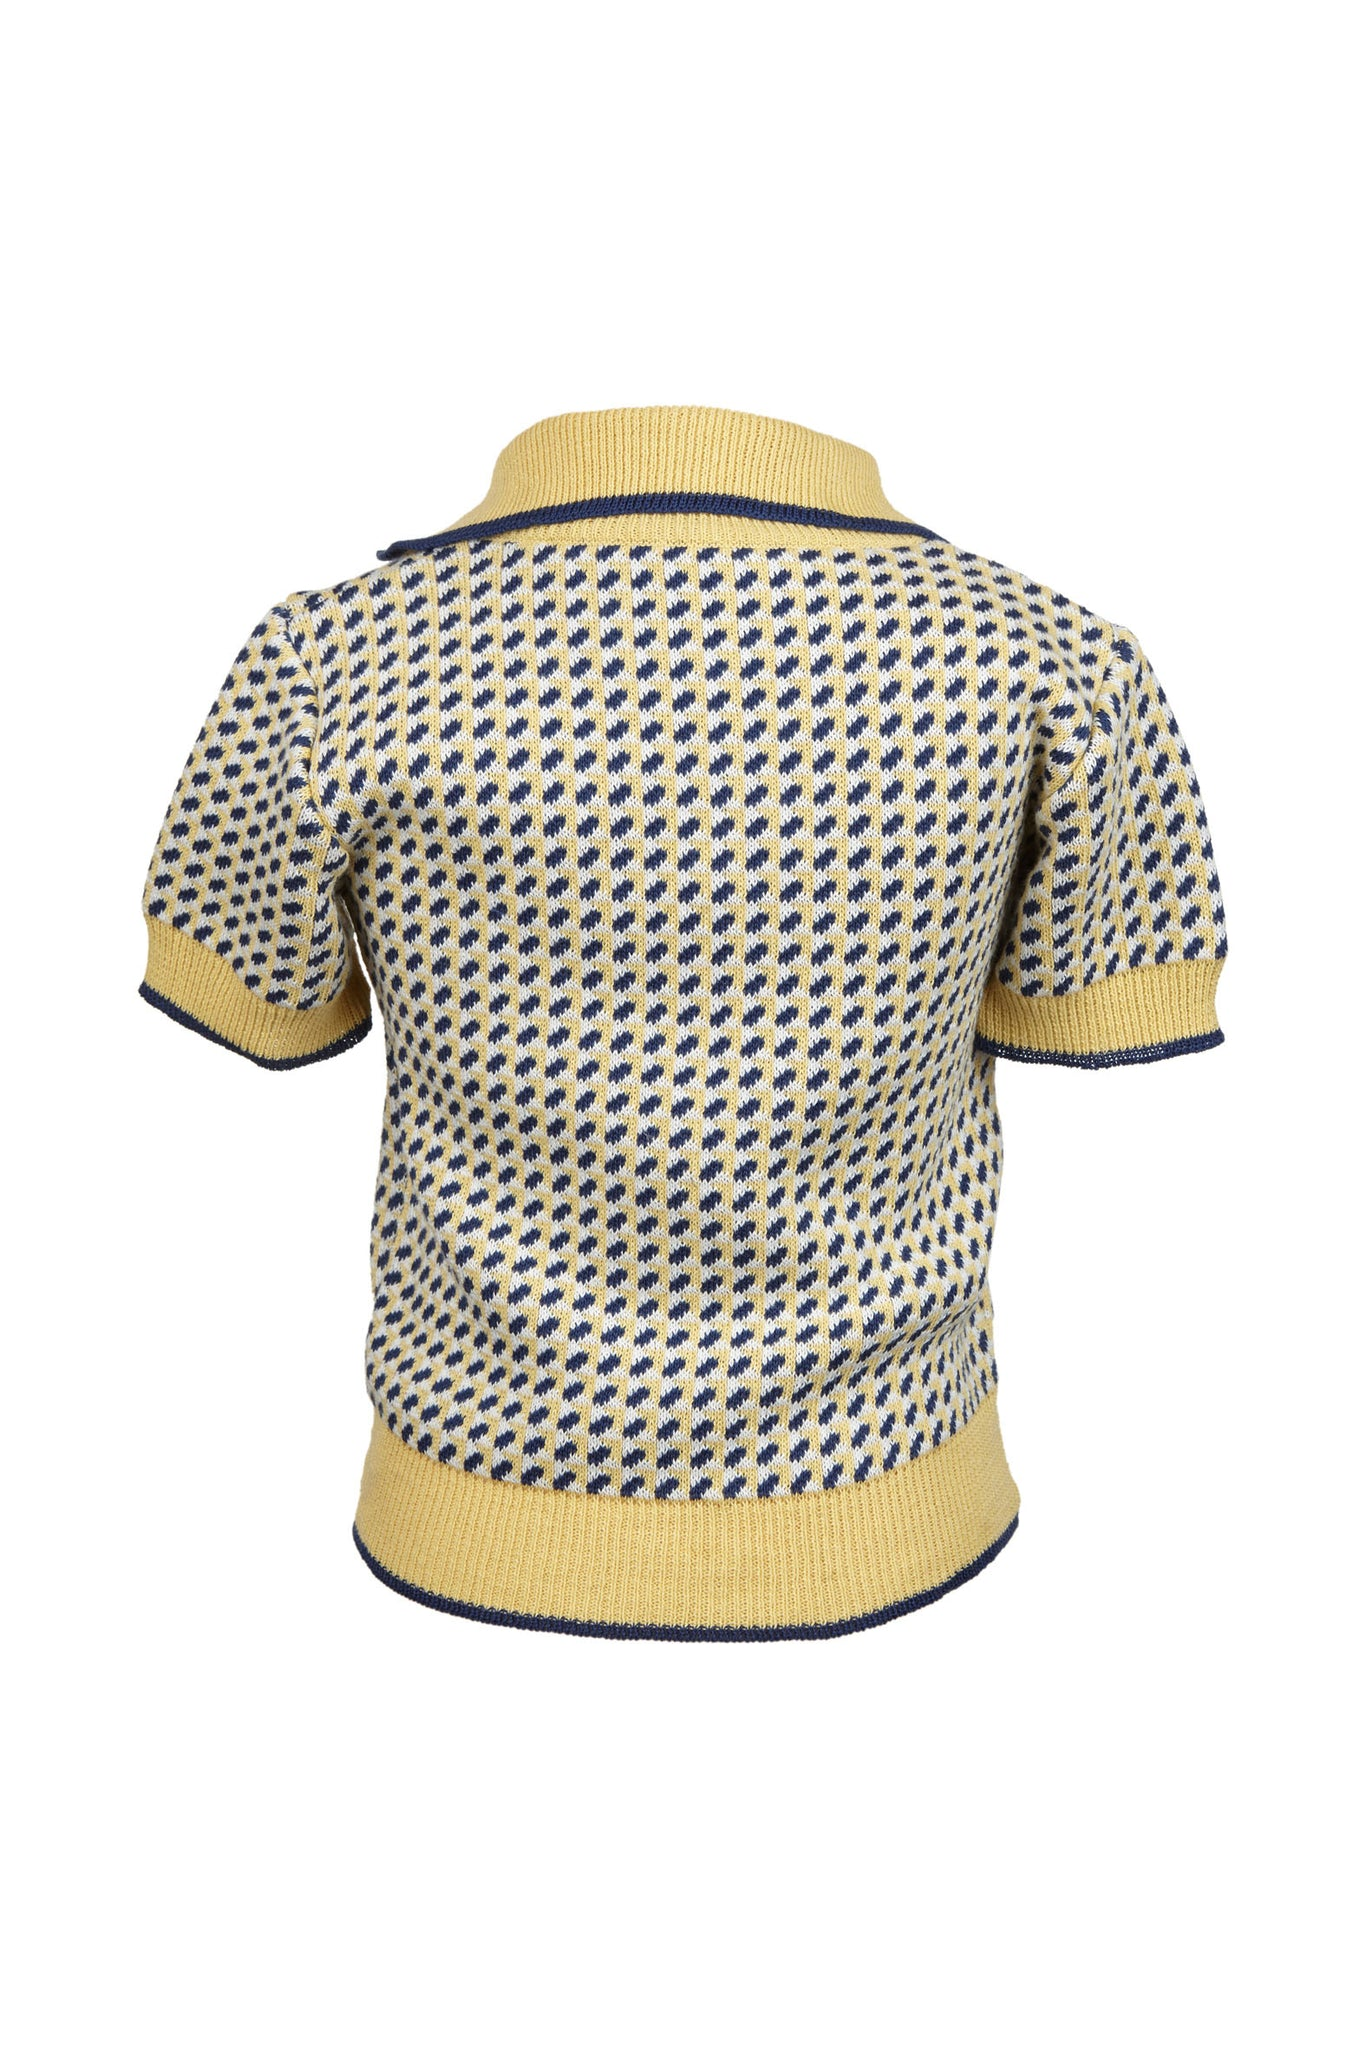 Children's Top - Lemon/Navy Fly Away - Palava